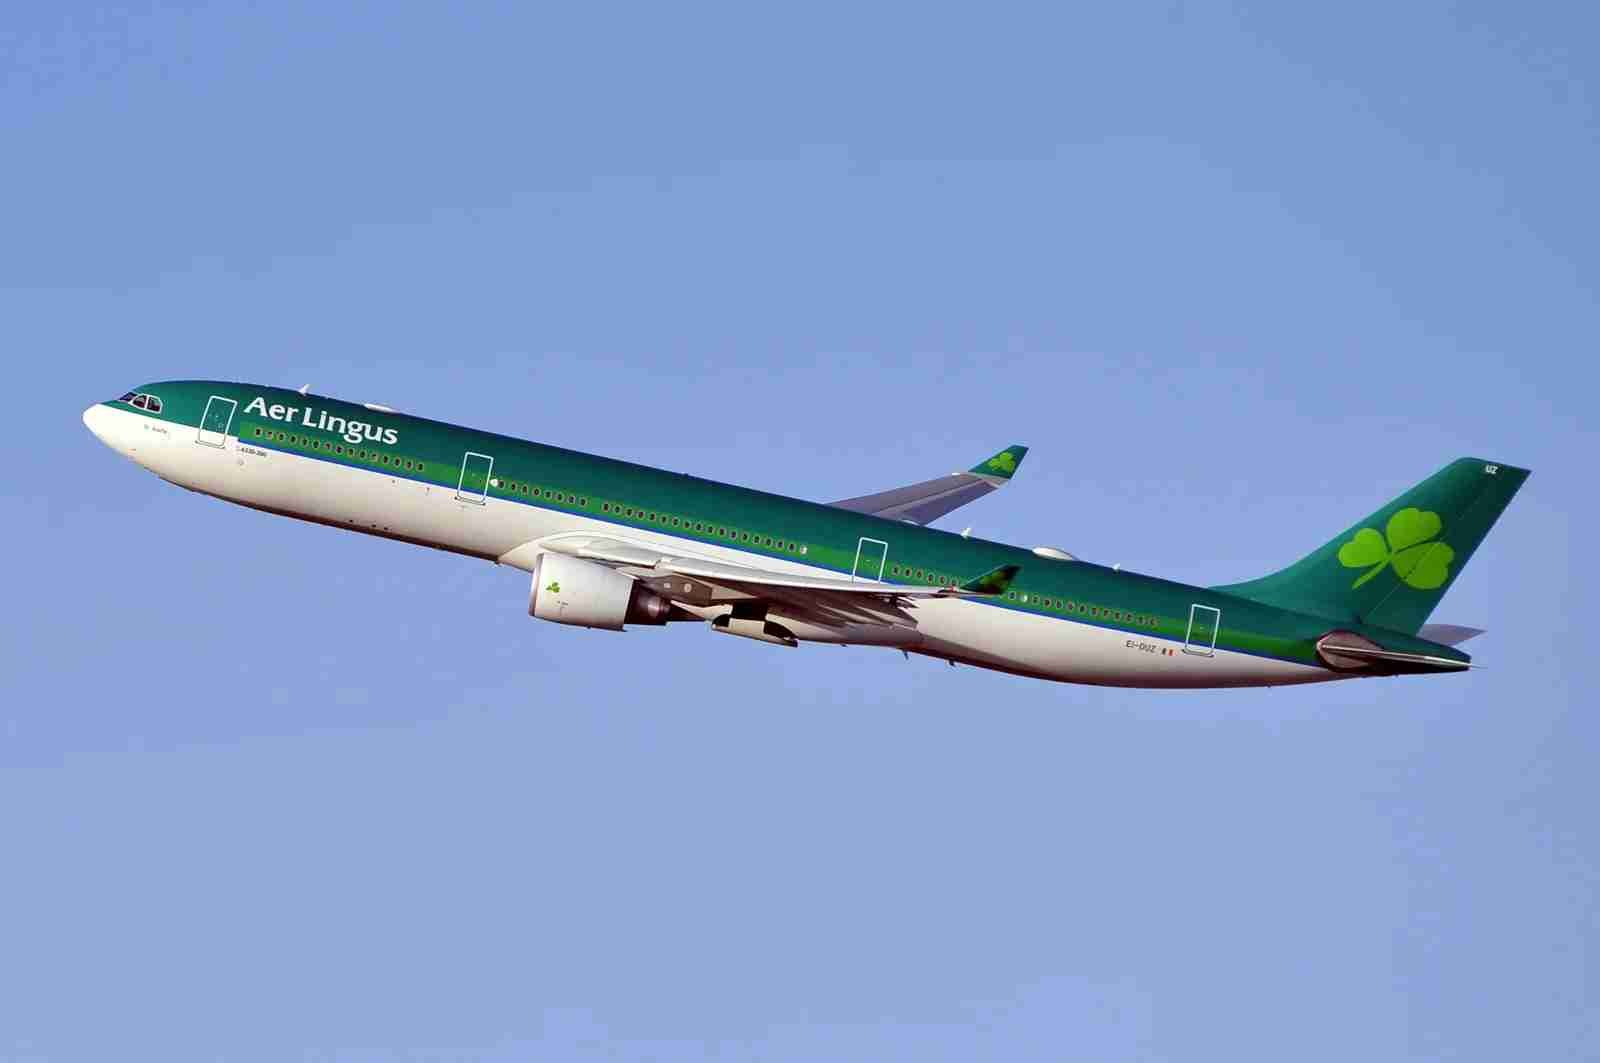 An Aer Lingus A330 takes off from Nw York JFK in April 2017 (Photo by Alberto Riva/TPG)